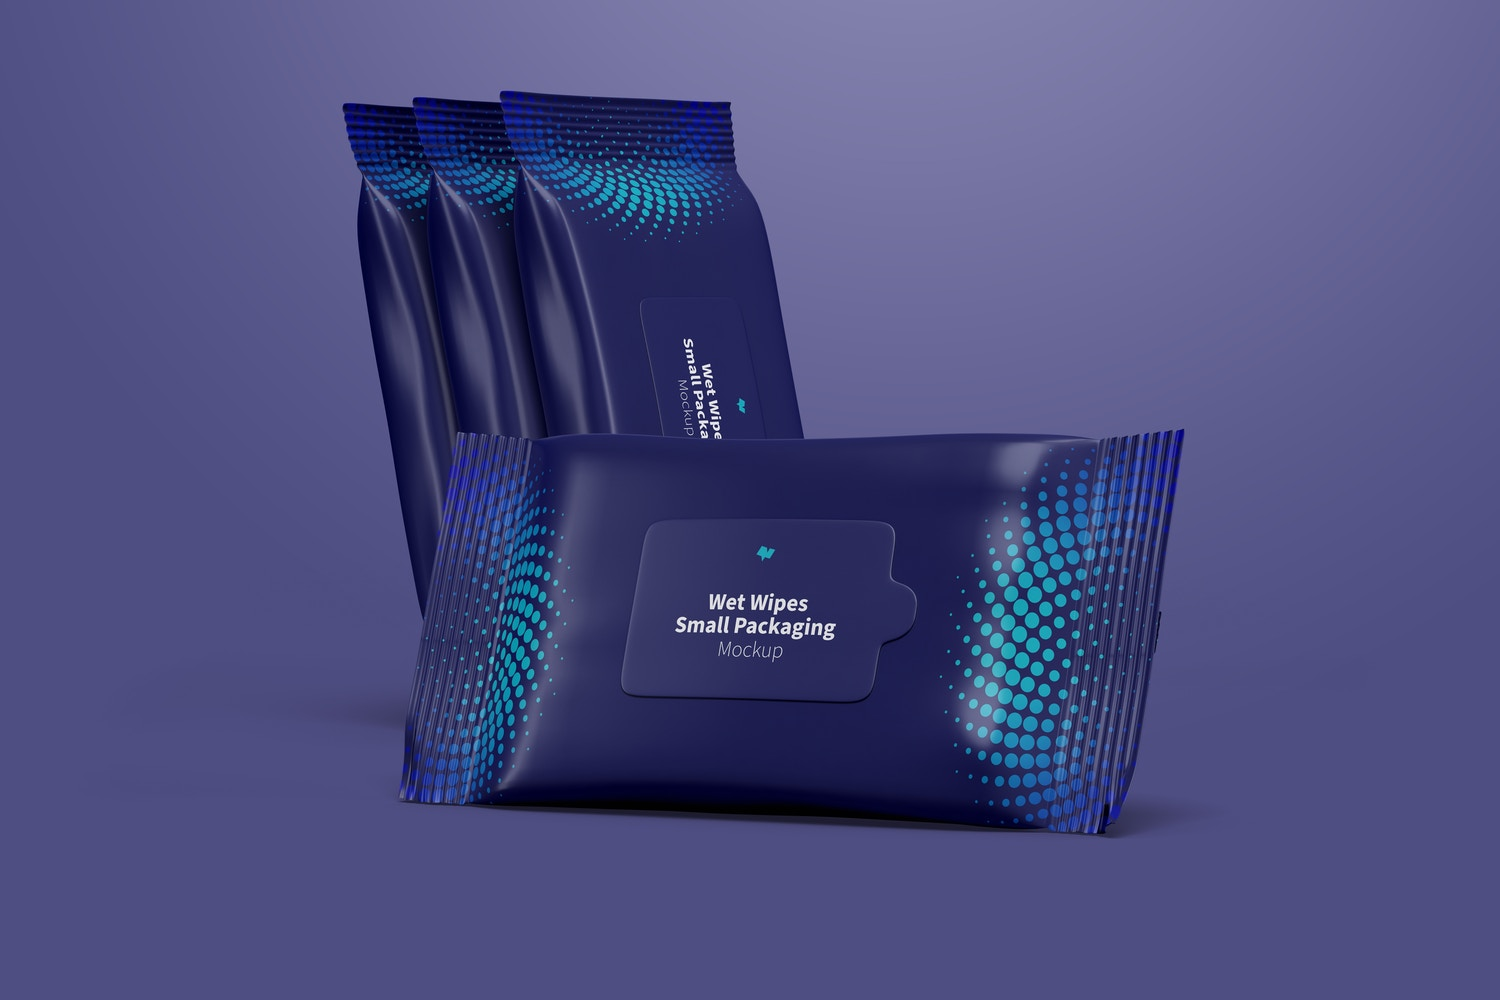 Take advantage of the composition of the scene and present your design throughout the packaging.